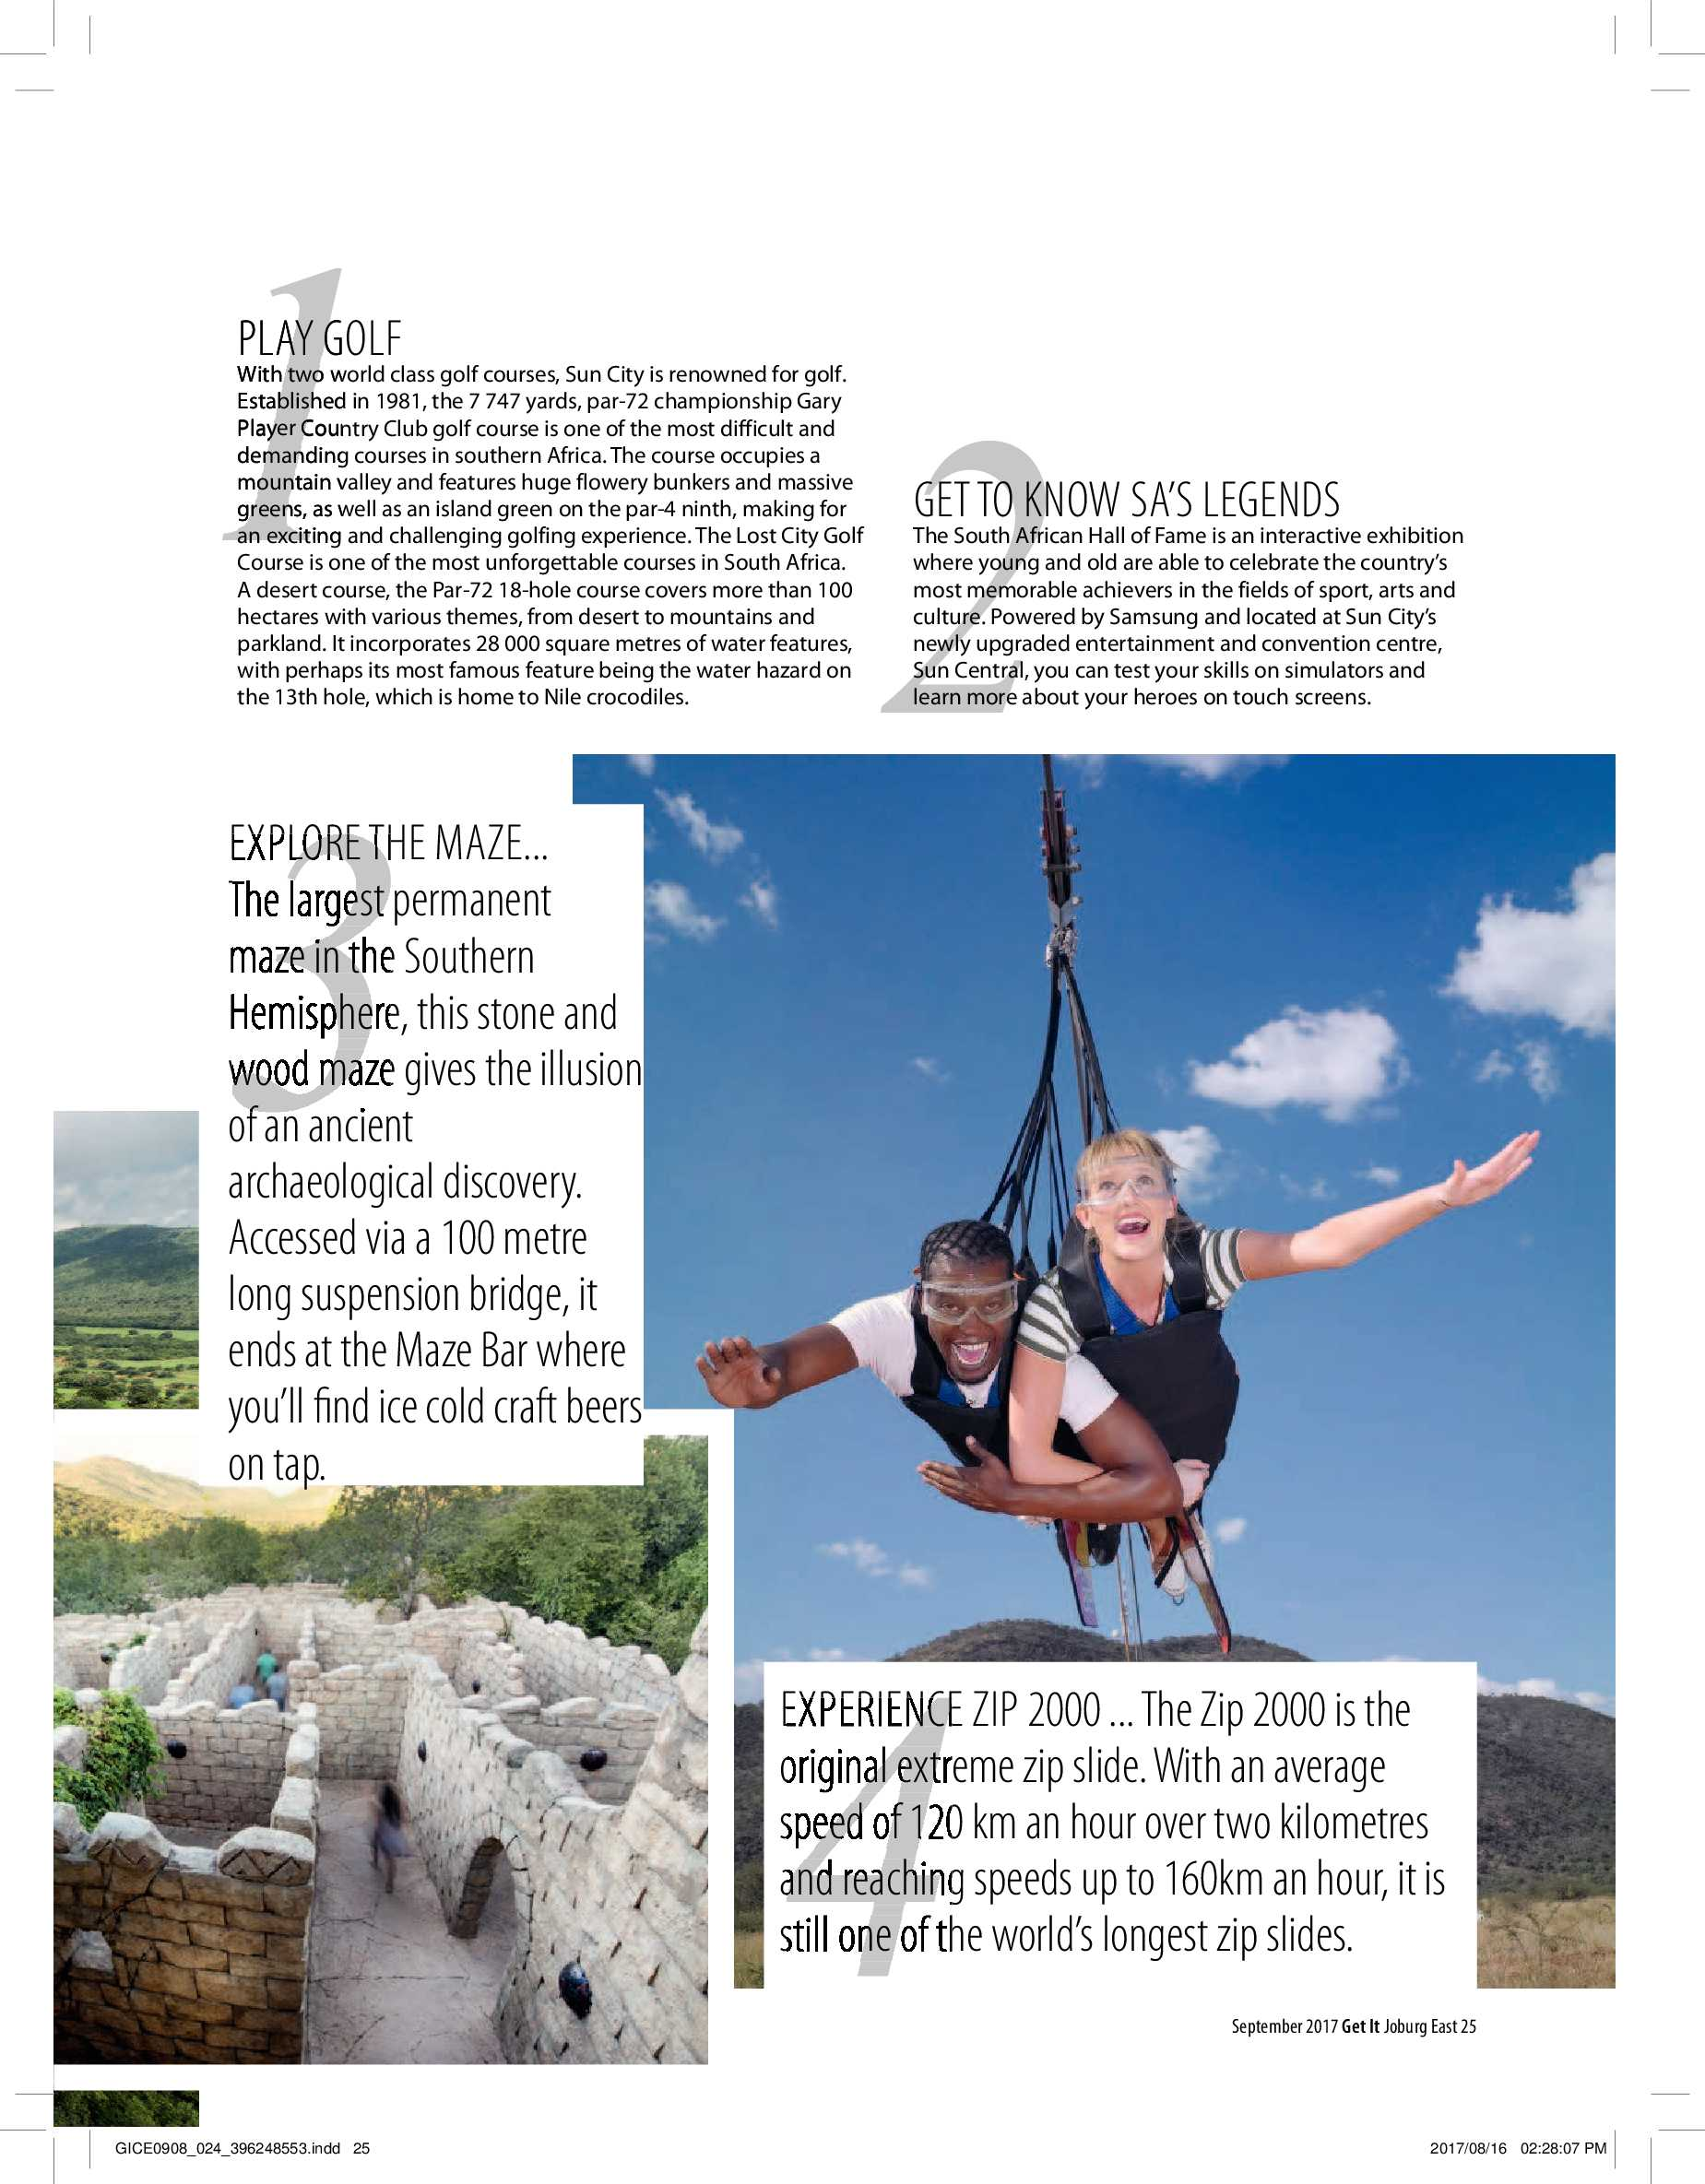 get-east-september-2017-epapers-page-25